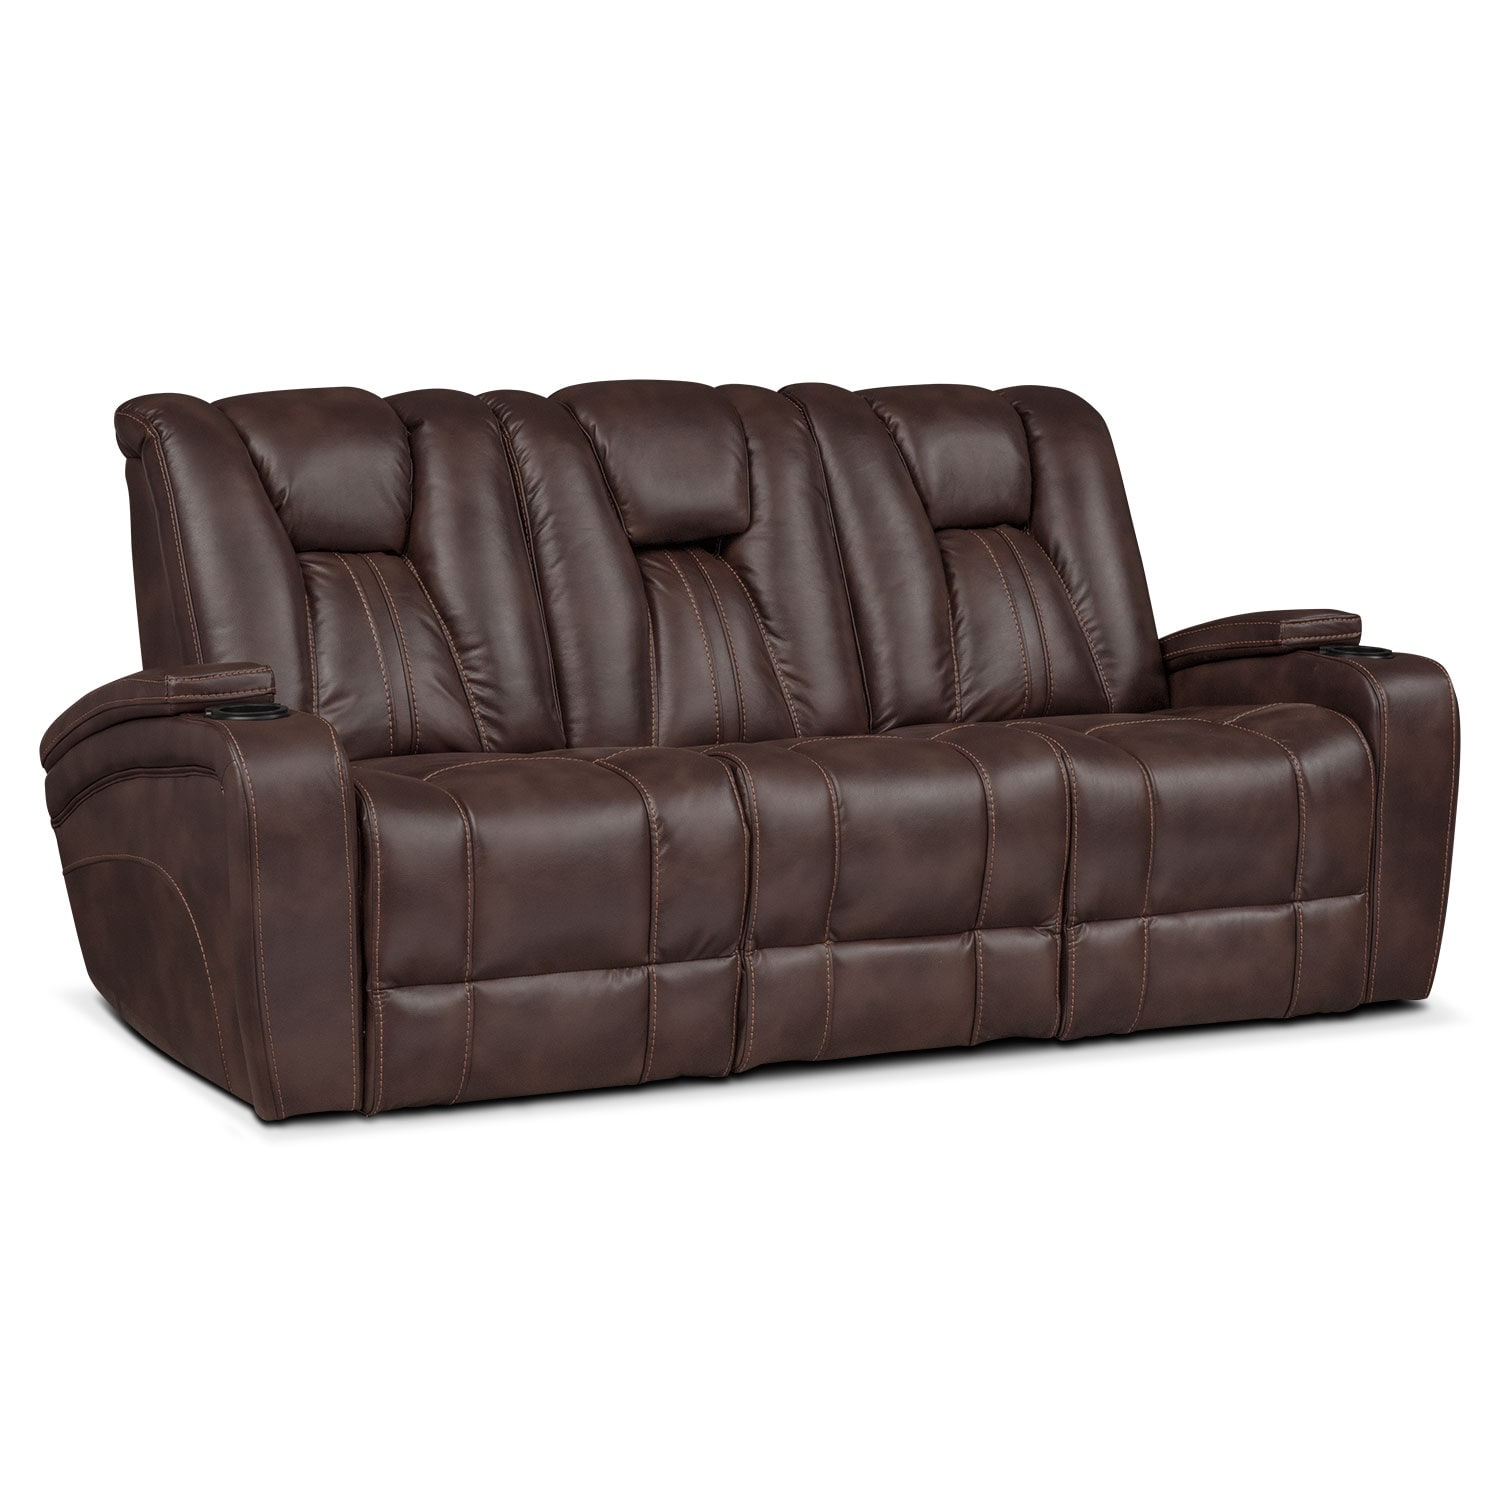 Pulsar Dual Power Reclining Sofa Brown Value City Furniture: reclining loveseat sale